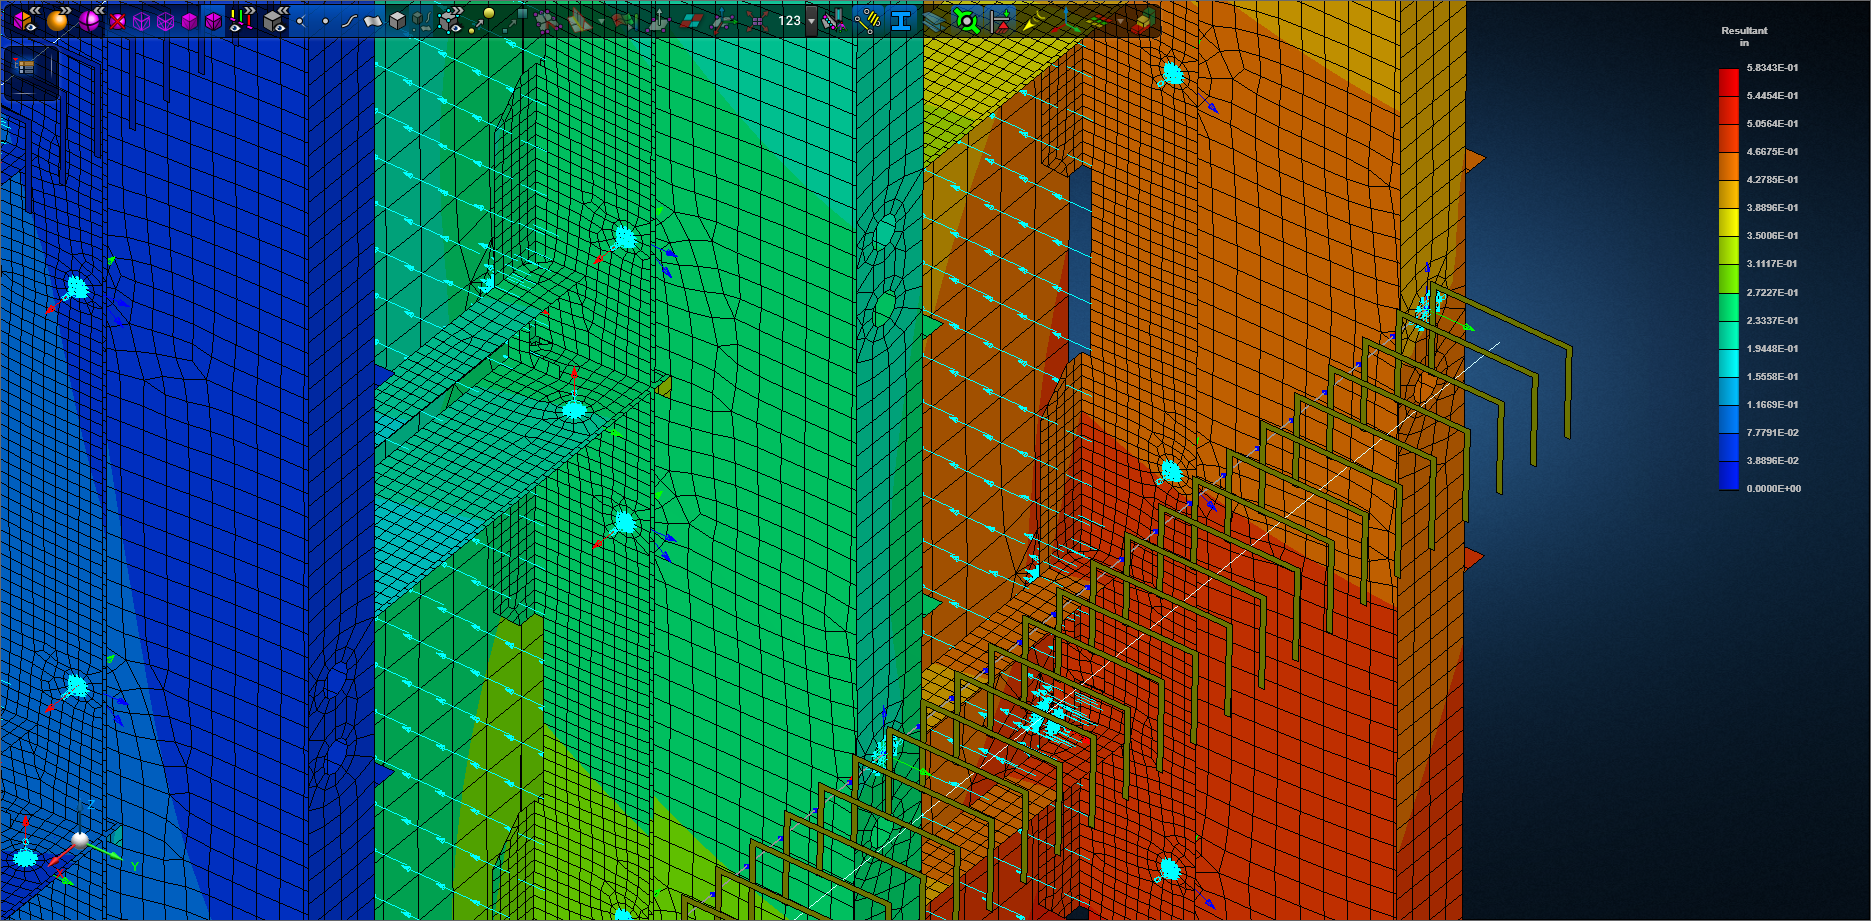 structural_fea_4.png